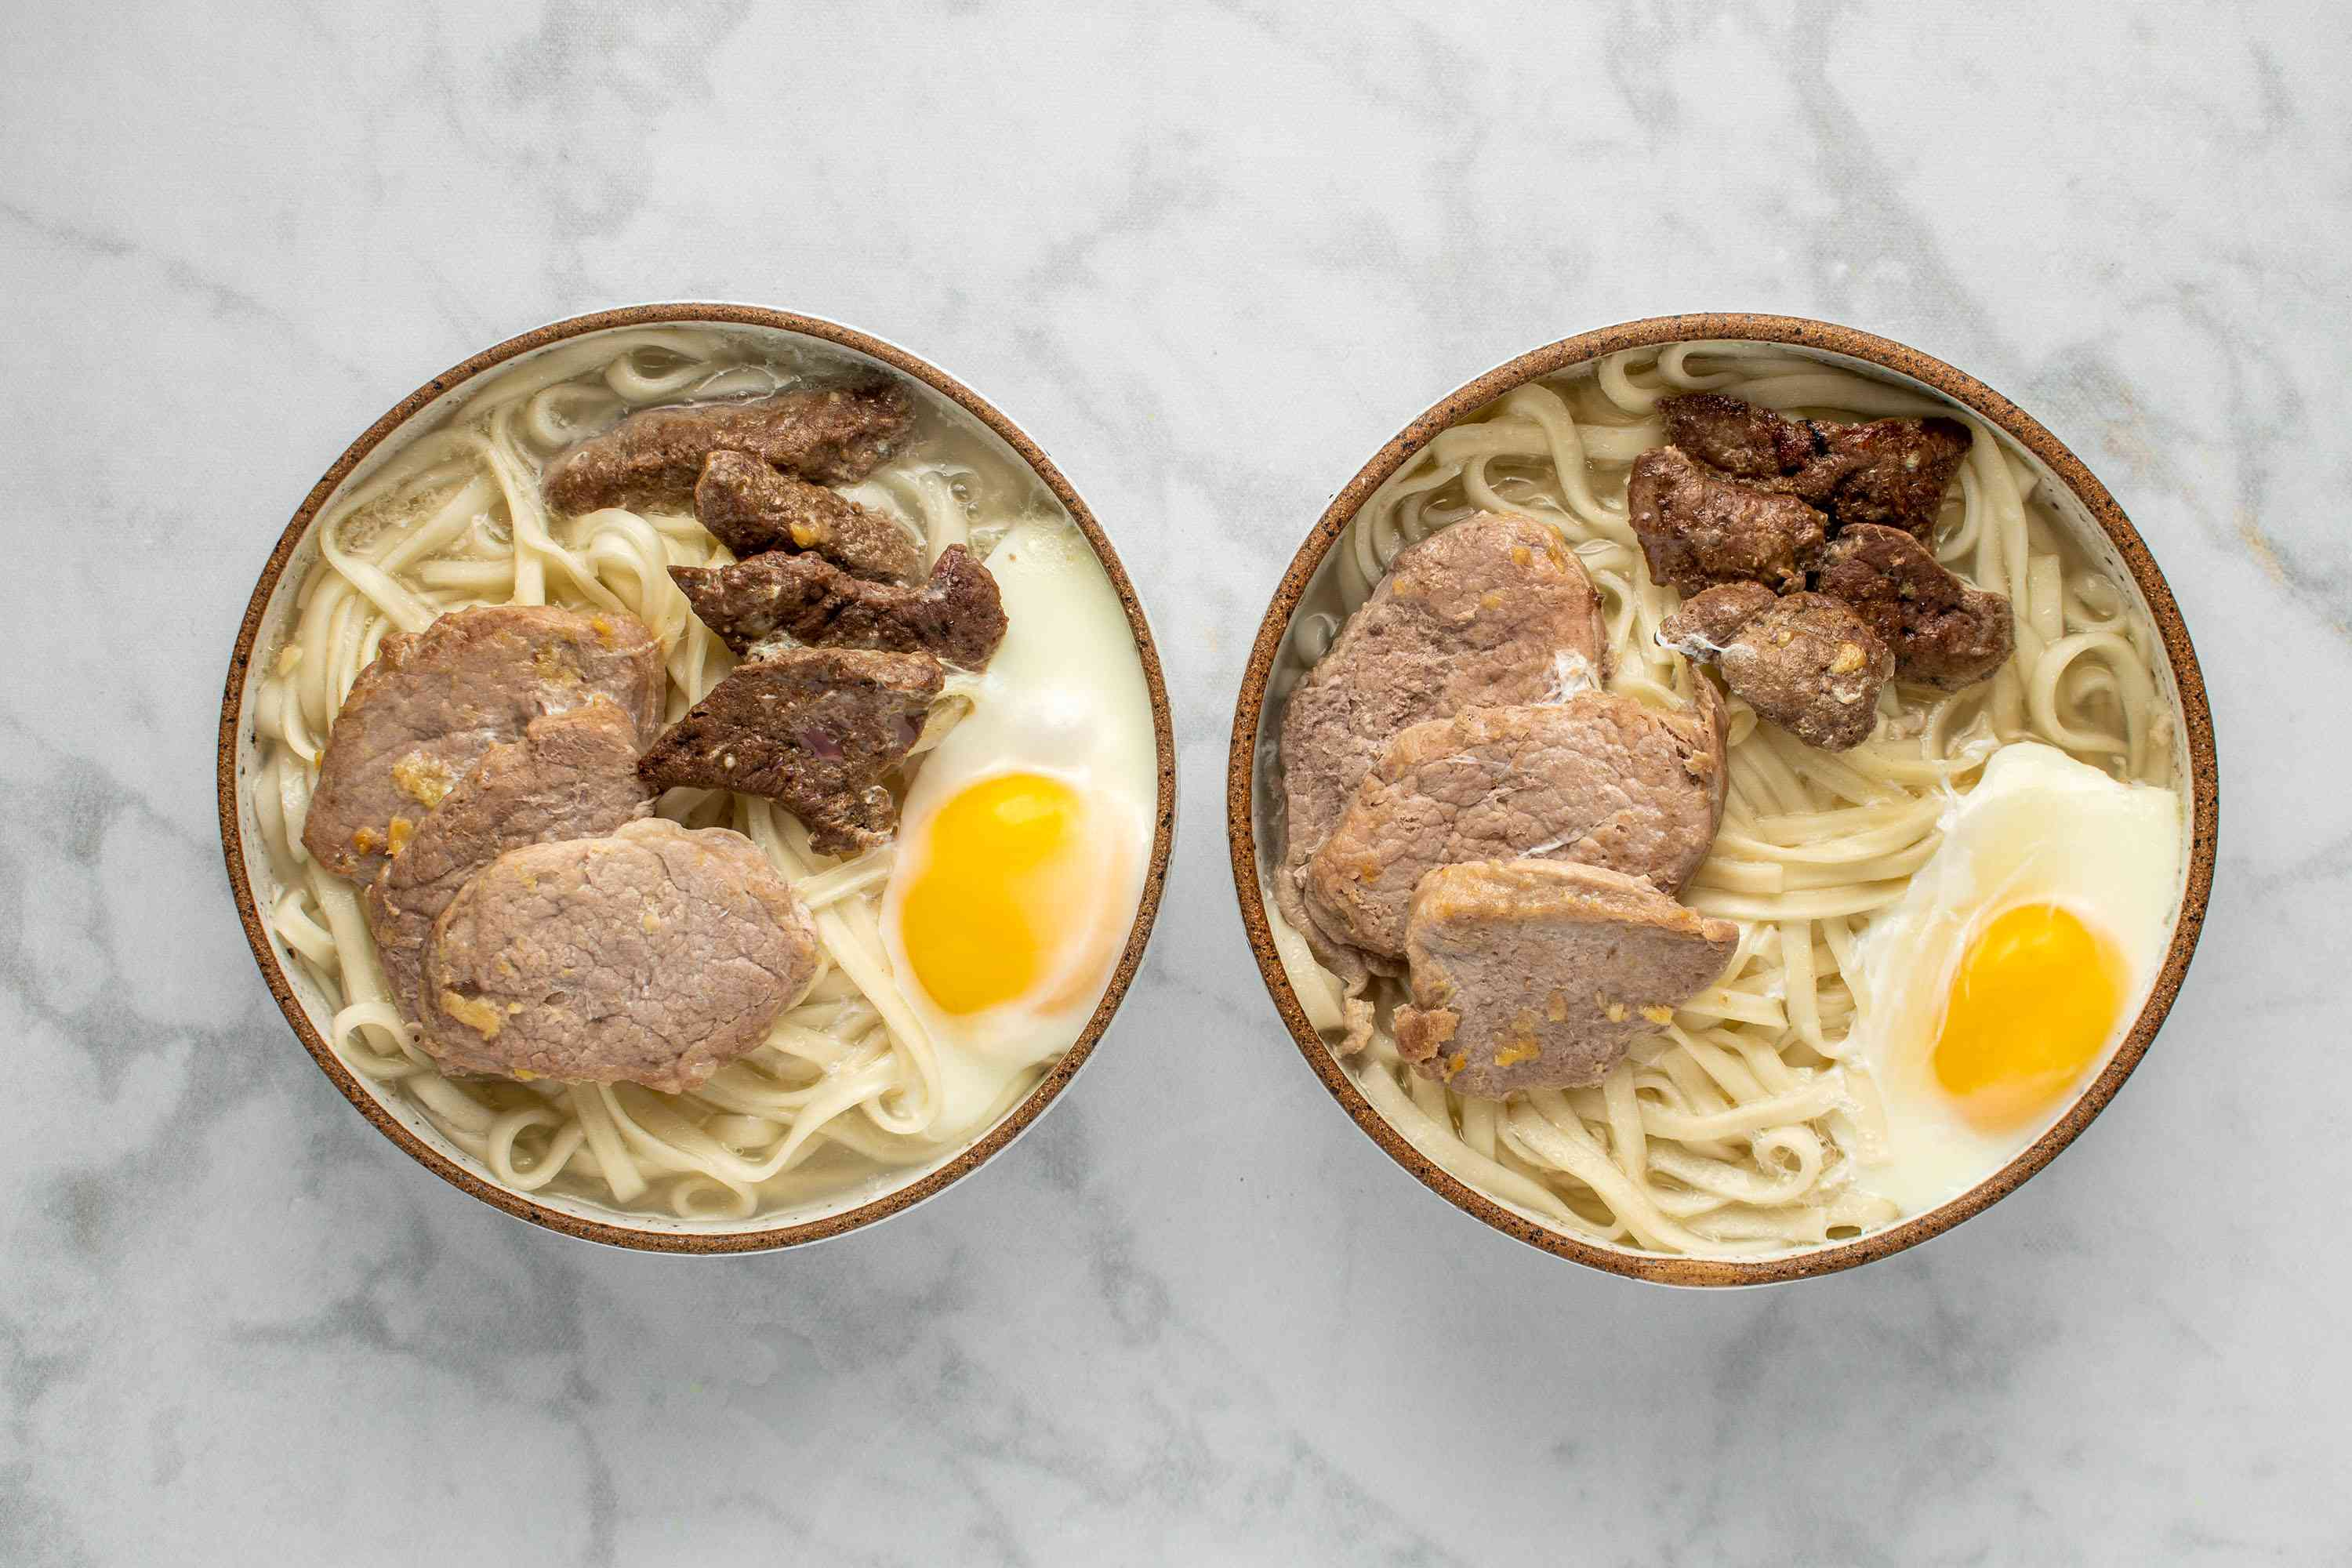 broth added to the noodles, meat and egg in the bowl